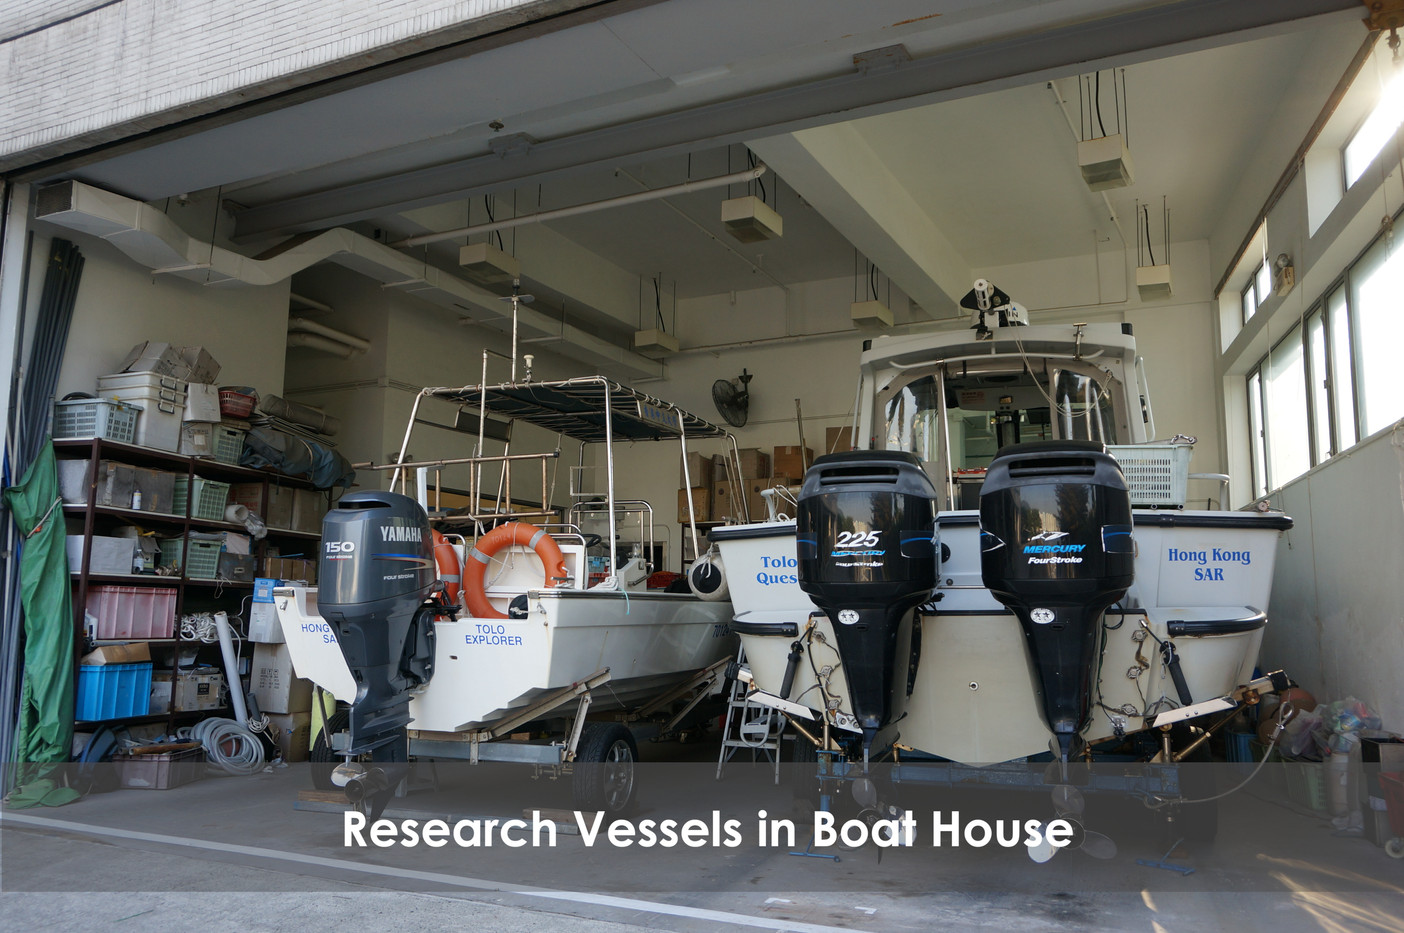 Research Vessels in Boat House GIMP.jpg